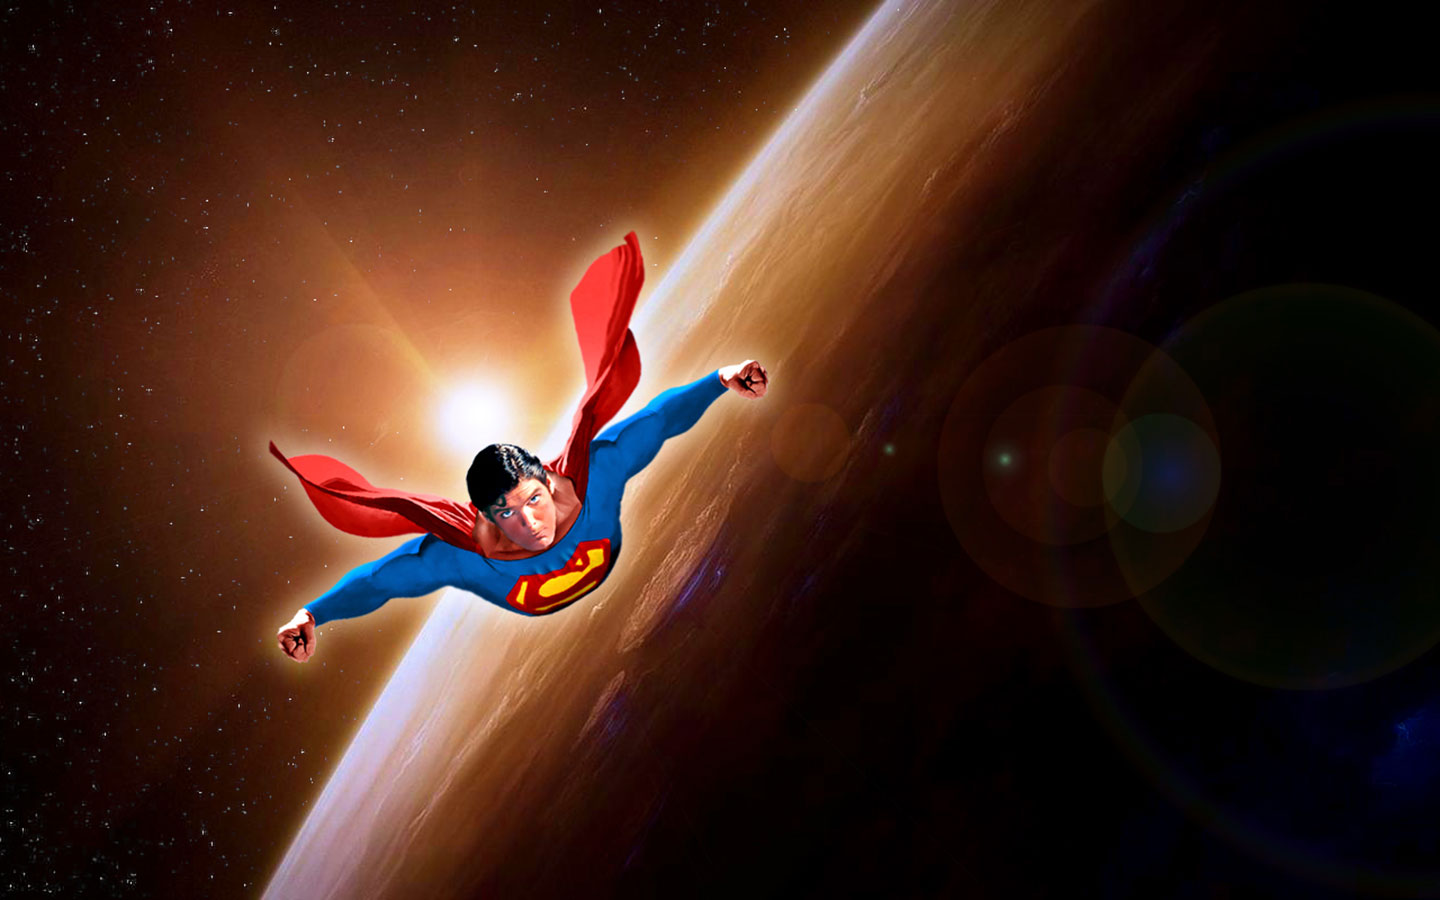 http://1.bp.blogspot.com/-hyGPfp7inaY/TnOONx7QcMI/AAAAAAAAEFM/9Je2_3kZ8Zo/s1600/Superman-Flying-In-Space-Widescreen-Wallpaper.jpg